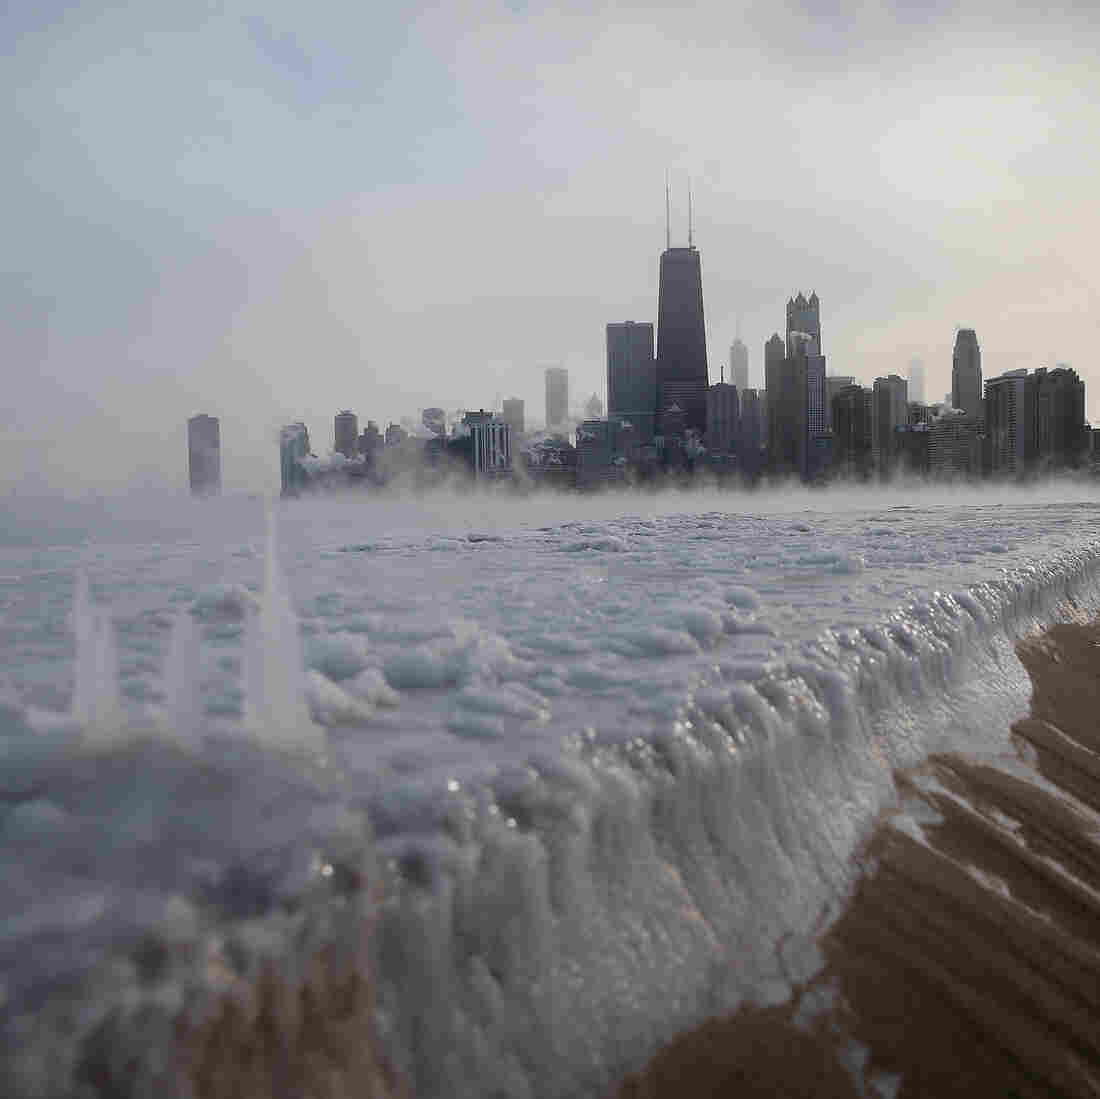 Ice has built up along Lake Michigan in Chicago as temperatures have plunged in recent days. A dip in the polar vortex is to blame.